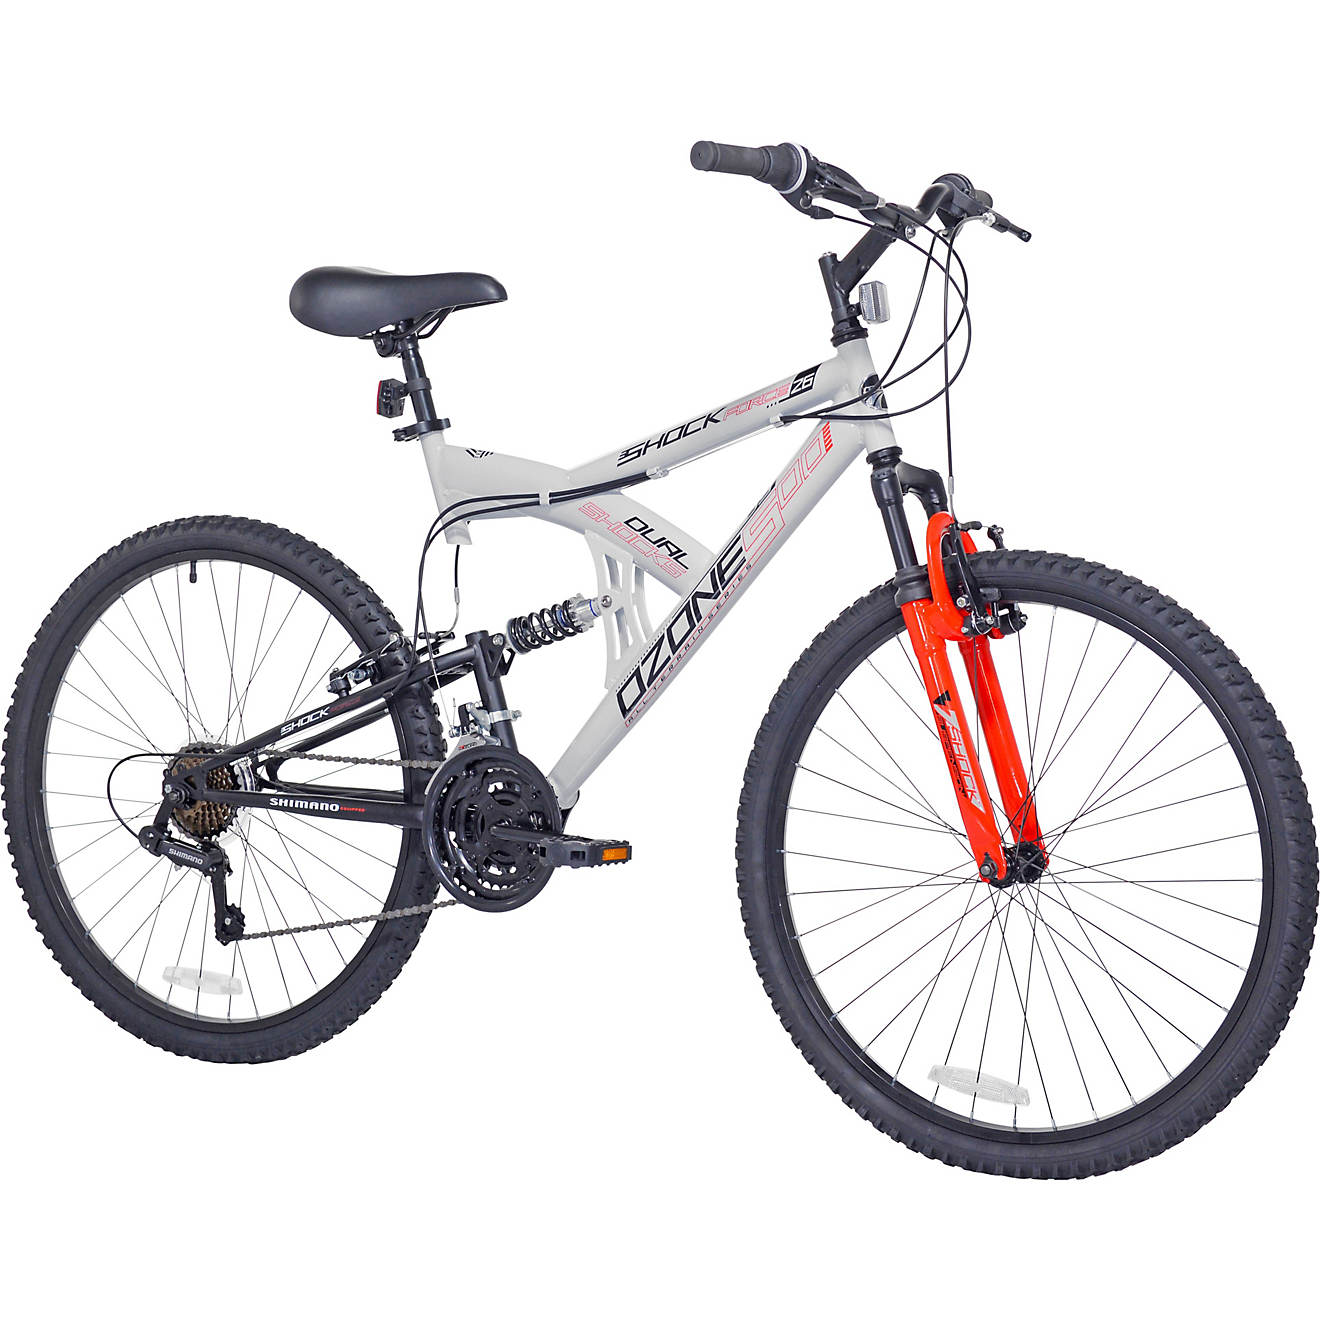 Ozone 500 Men's Shock Force 26 in 21-Speed Full Suspension Mountain Bike